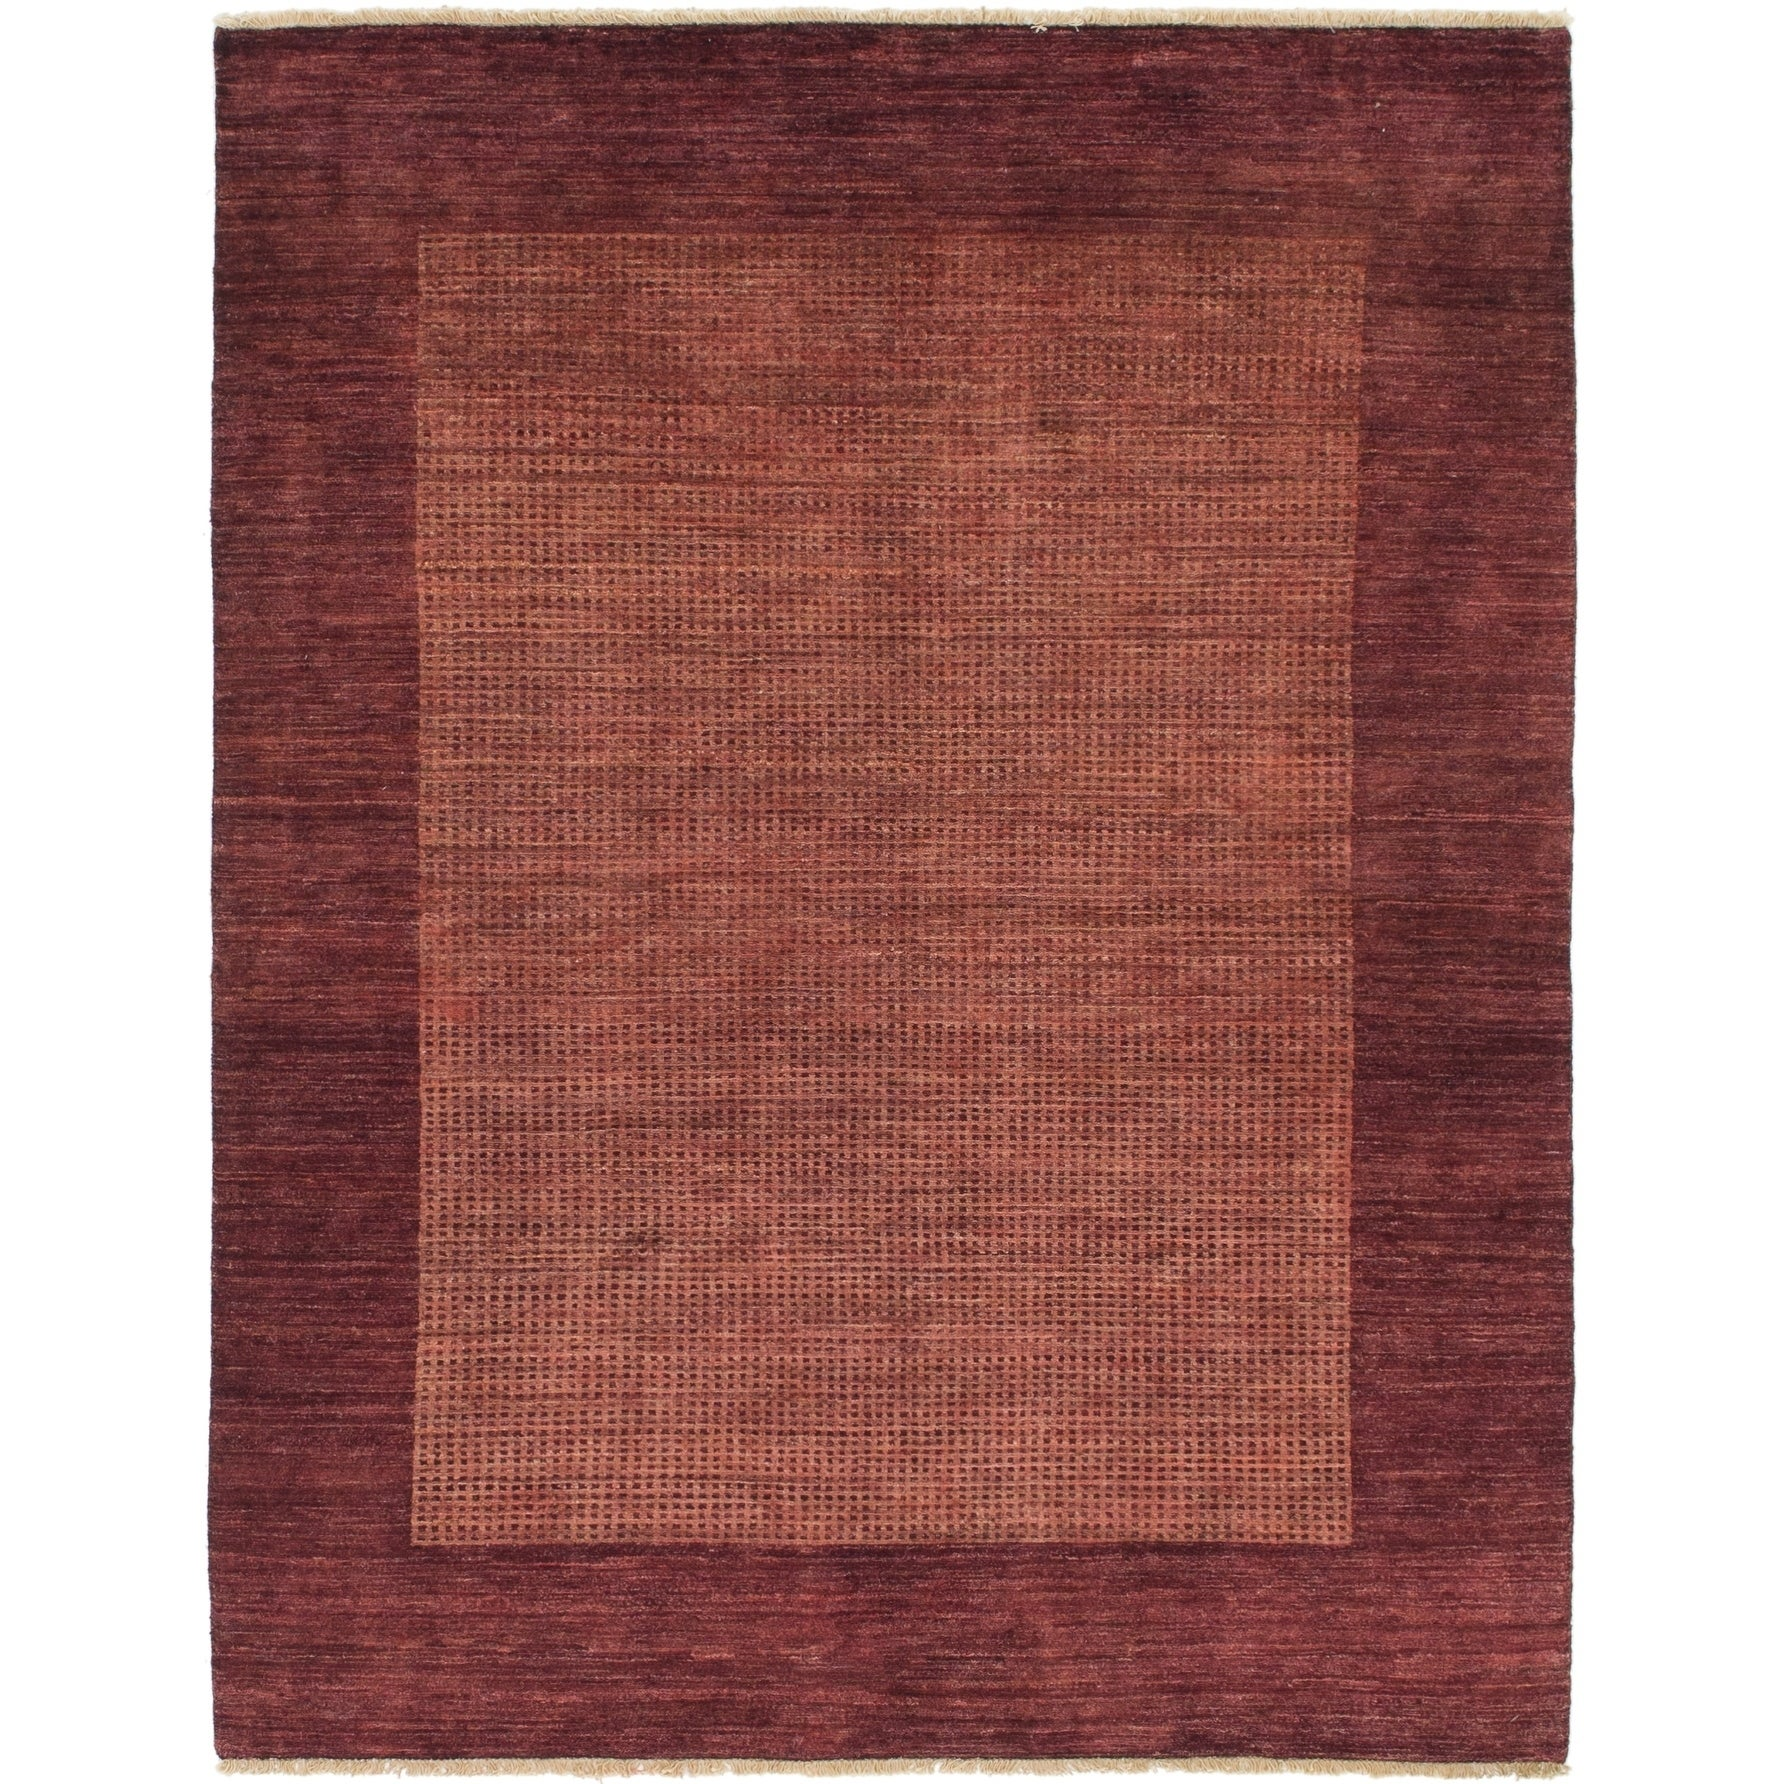 Hand Knotted Kashkuli Gabbeh Wool Area Rug - 5 2 x 6 7 (Plum Red - 5 2 x 6 7)